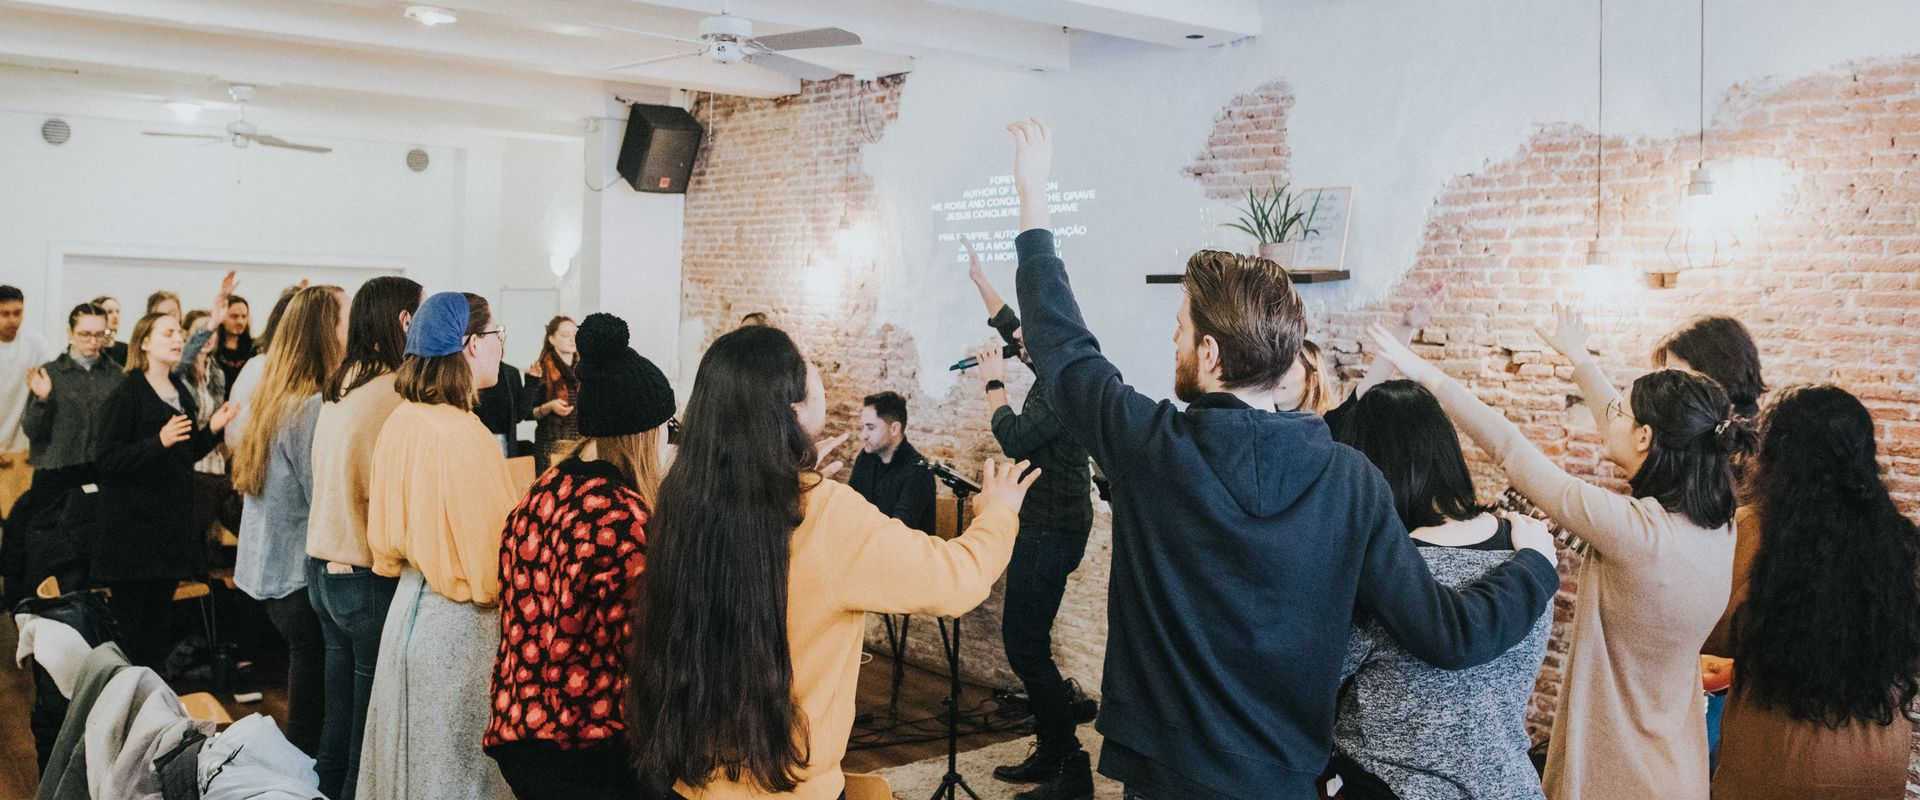 young people worshipping